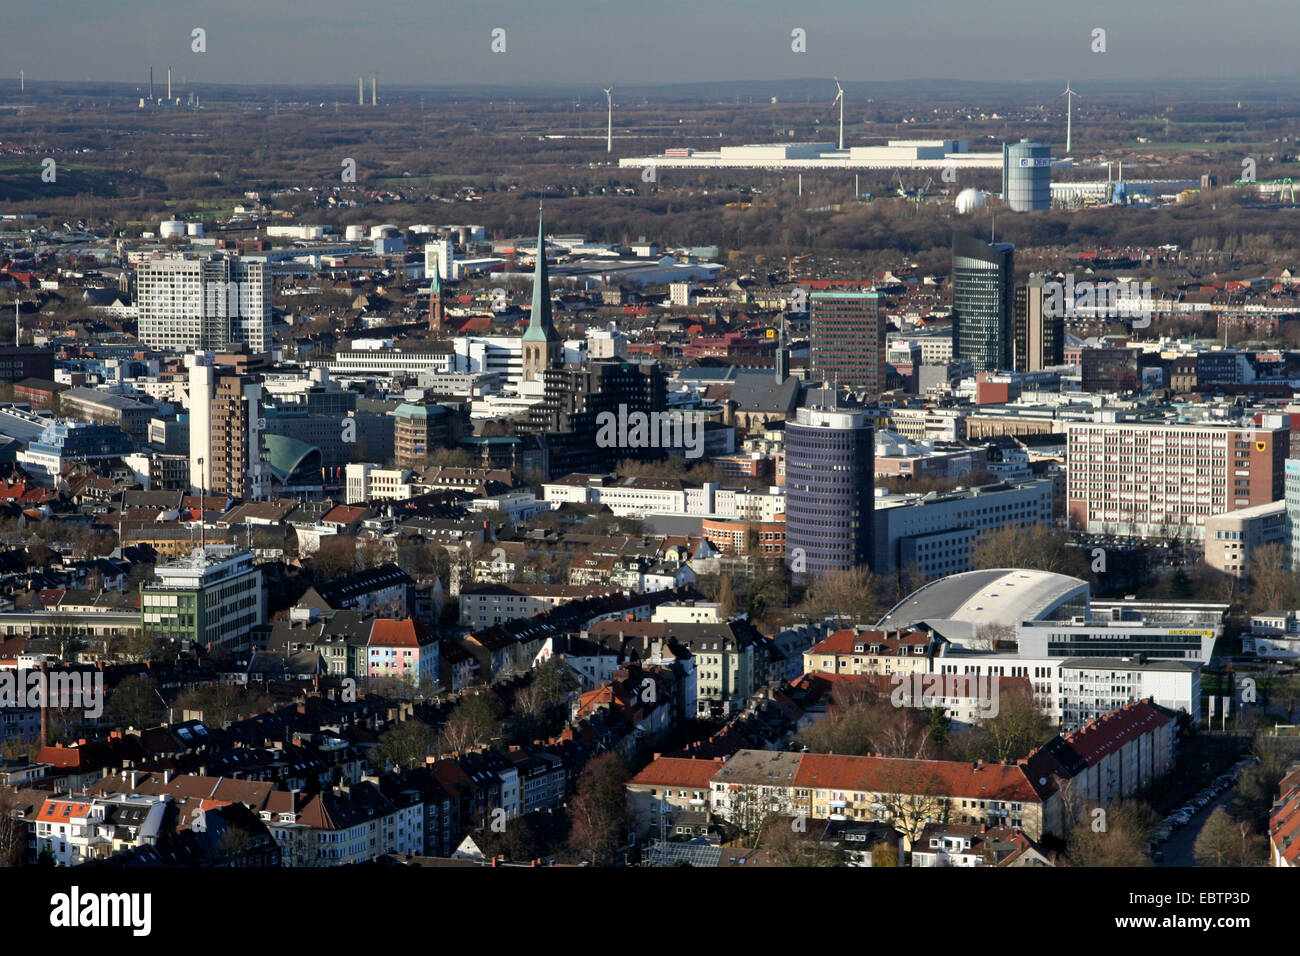 dortmund city centre stockfotos dortmund city centre bilder alamy. Black Bedroom Furniture Sets. Home Design Ideas